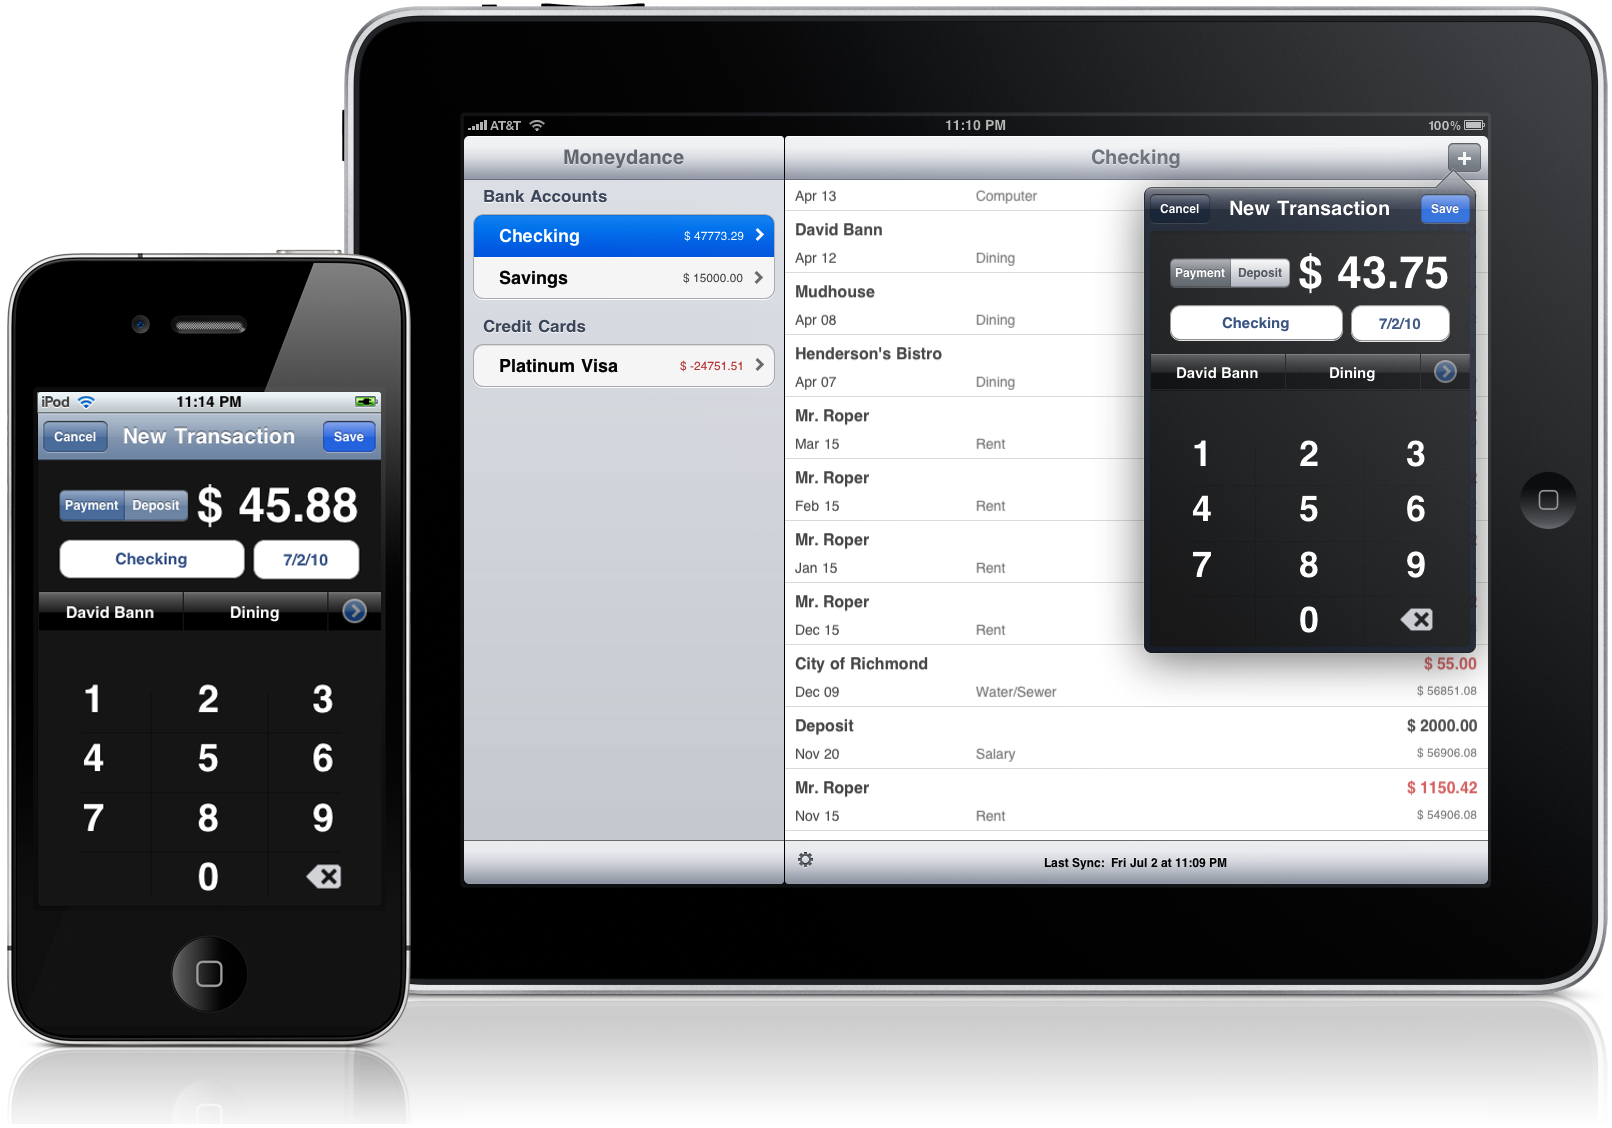 Moneydance® 2010 - Personal Finance Manager for Mac, Windows